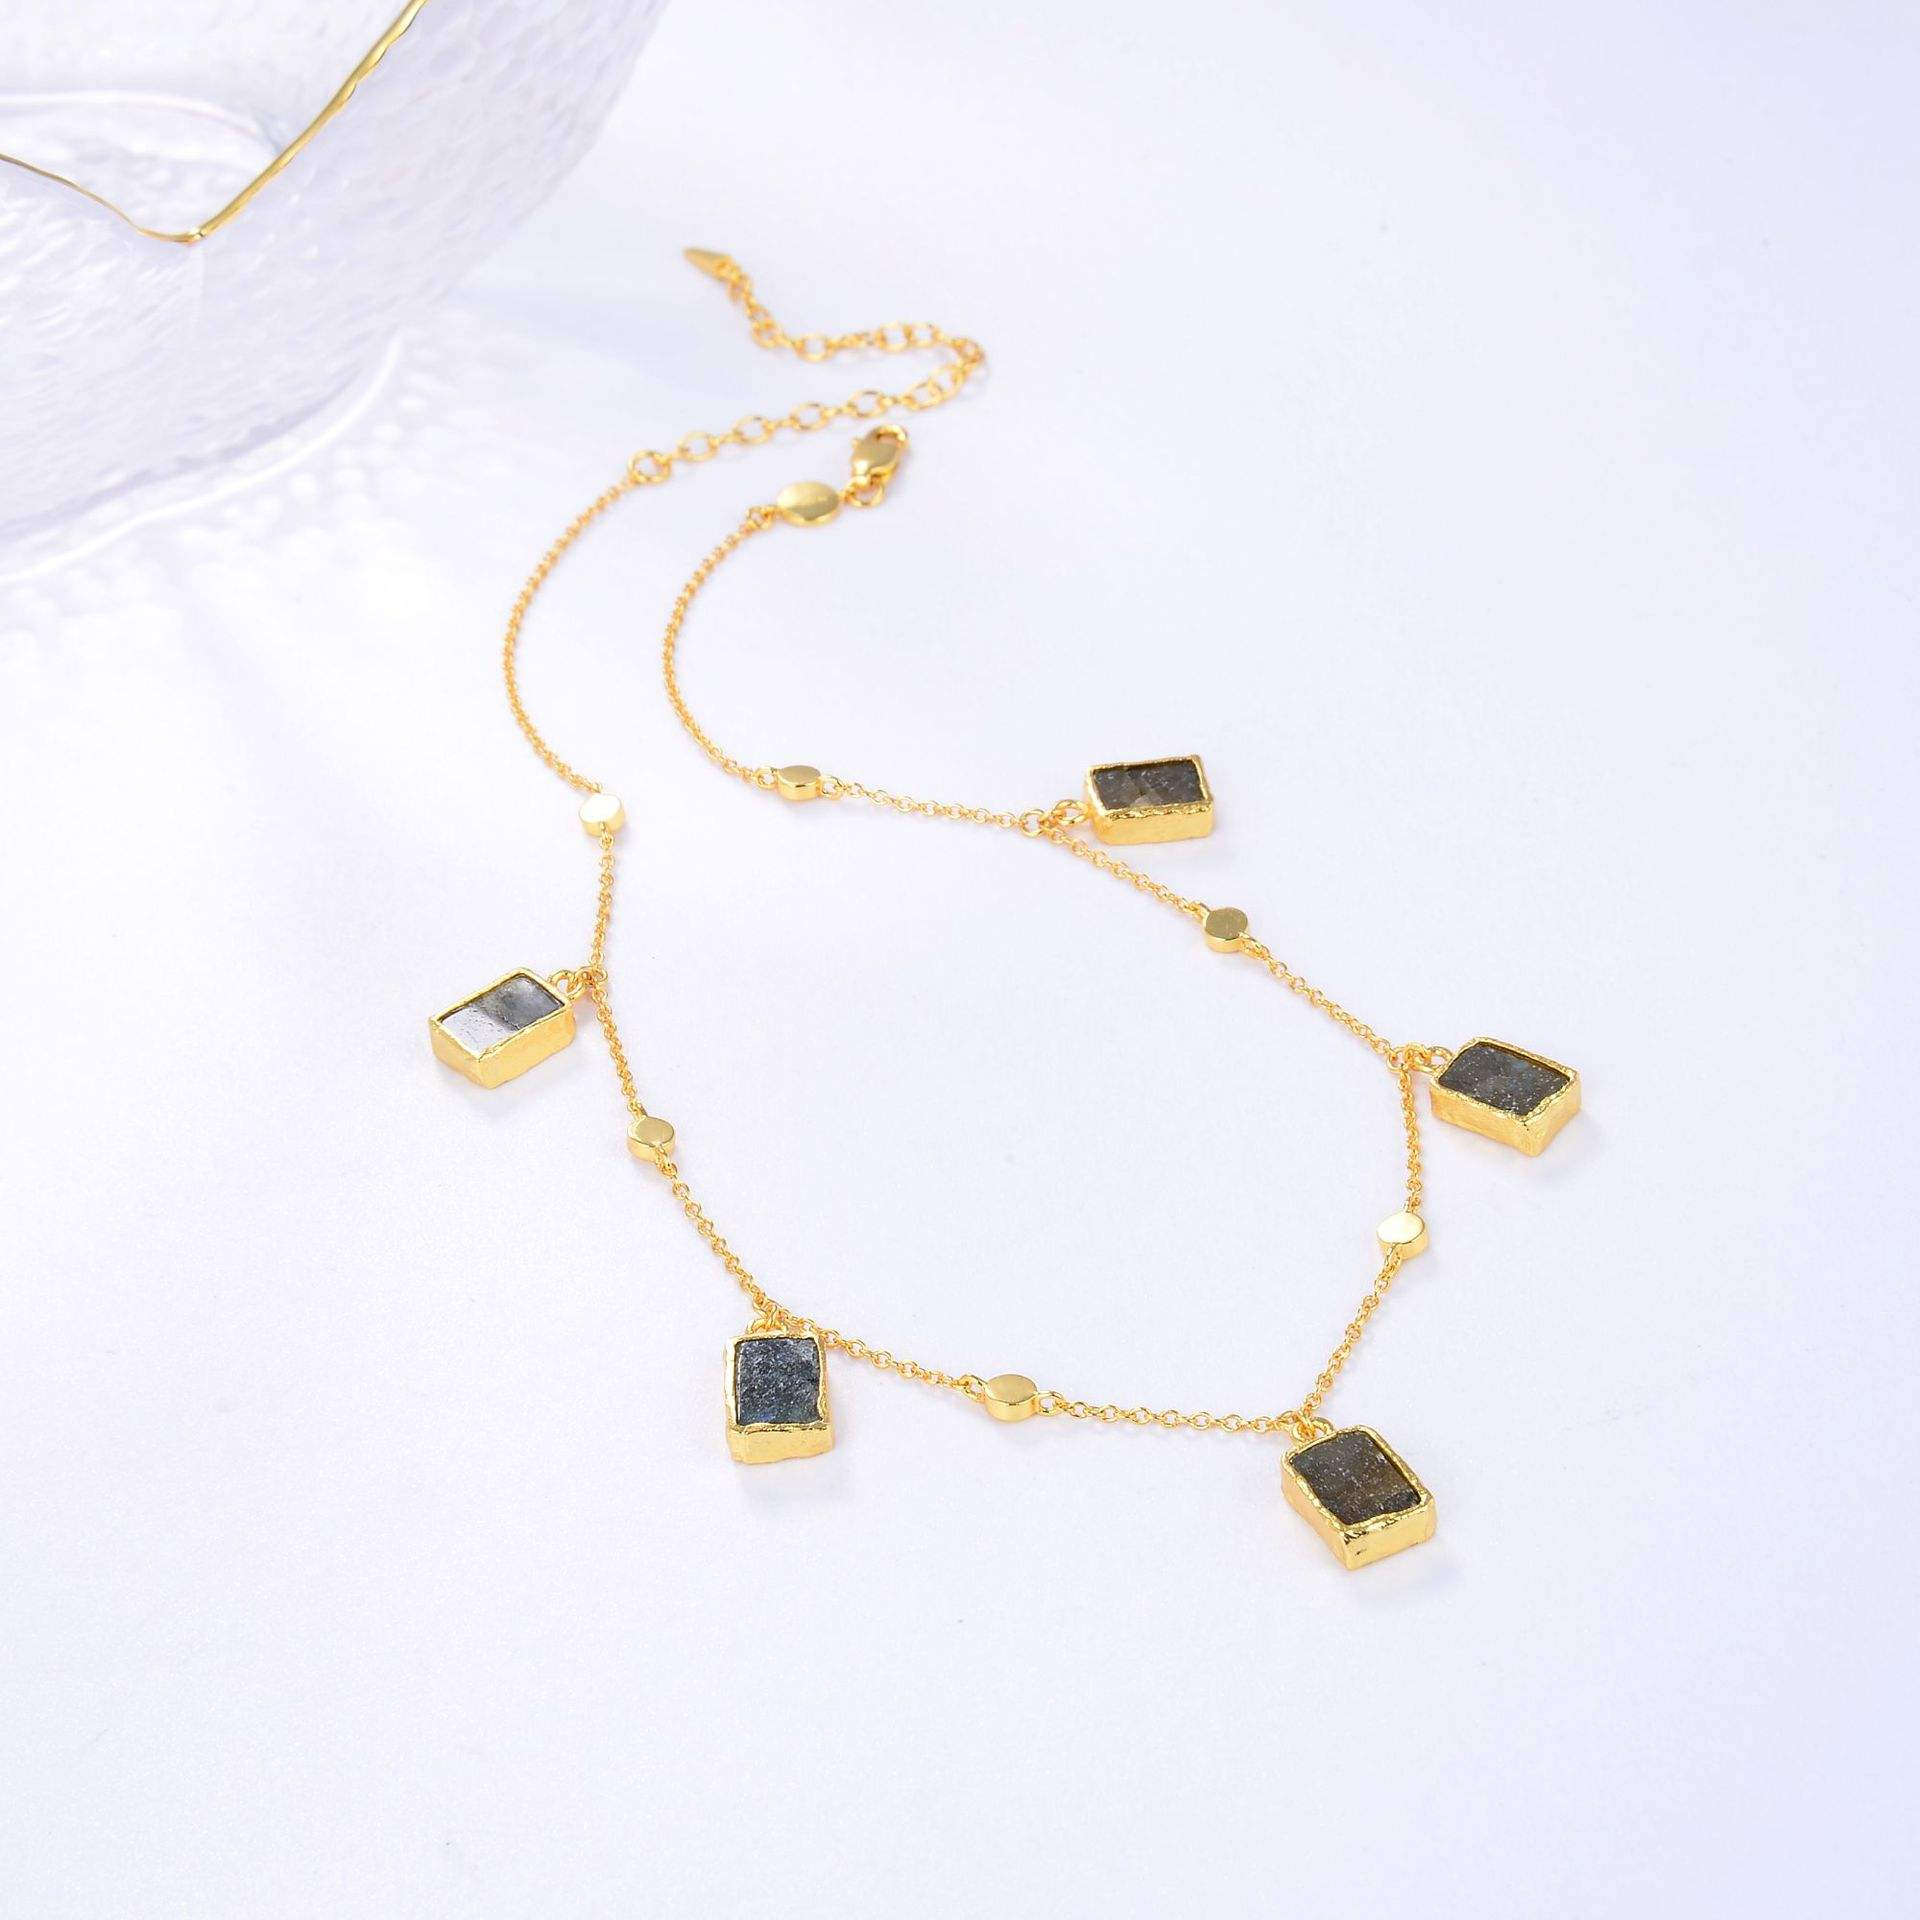 Original 925 Sterling Silver 18K Gold Plated Gemstone Pendant Choker Necklace